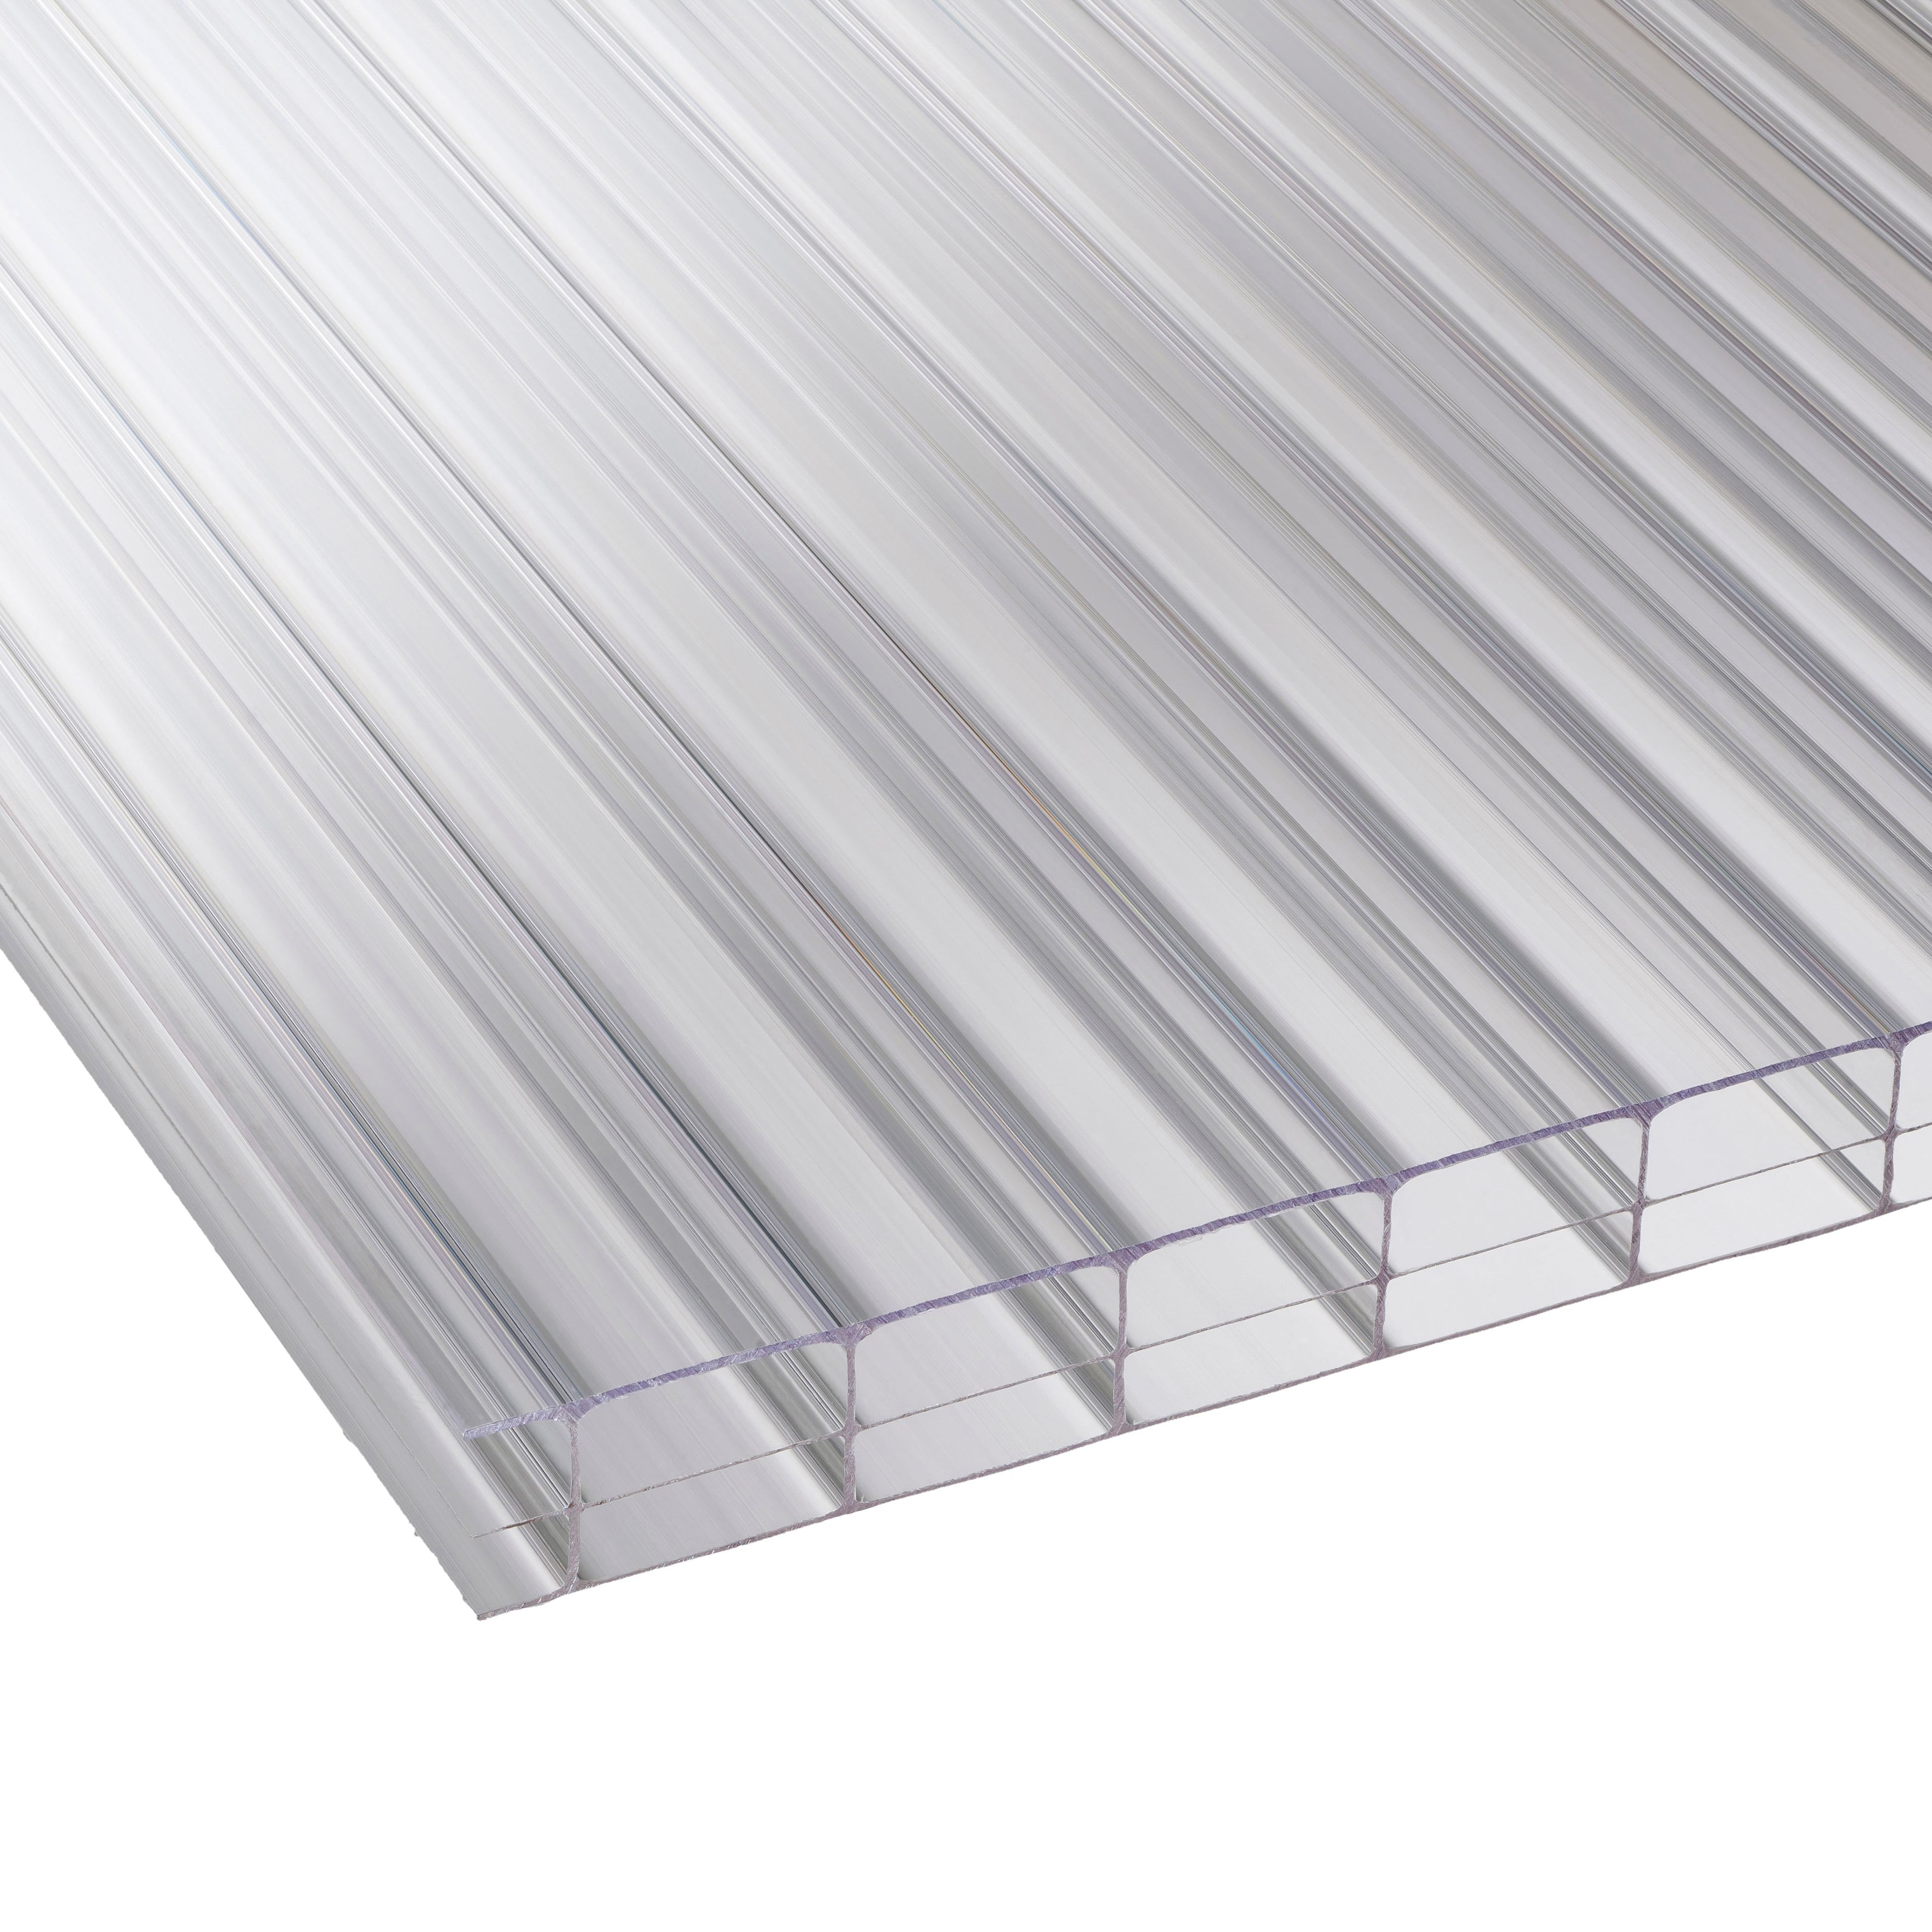 Clear Multiwall Polycarbonate Roofing Sheet 2.5m X 700mm, Pack Of 5